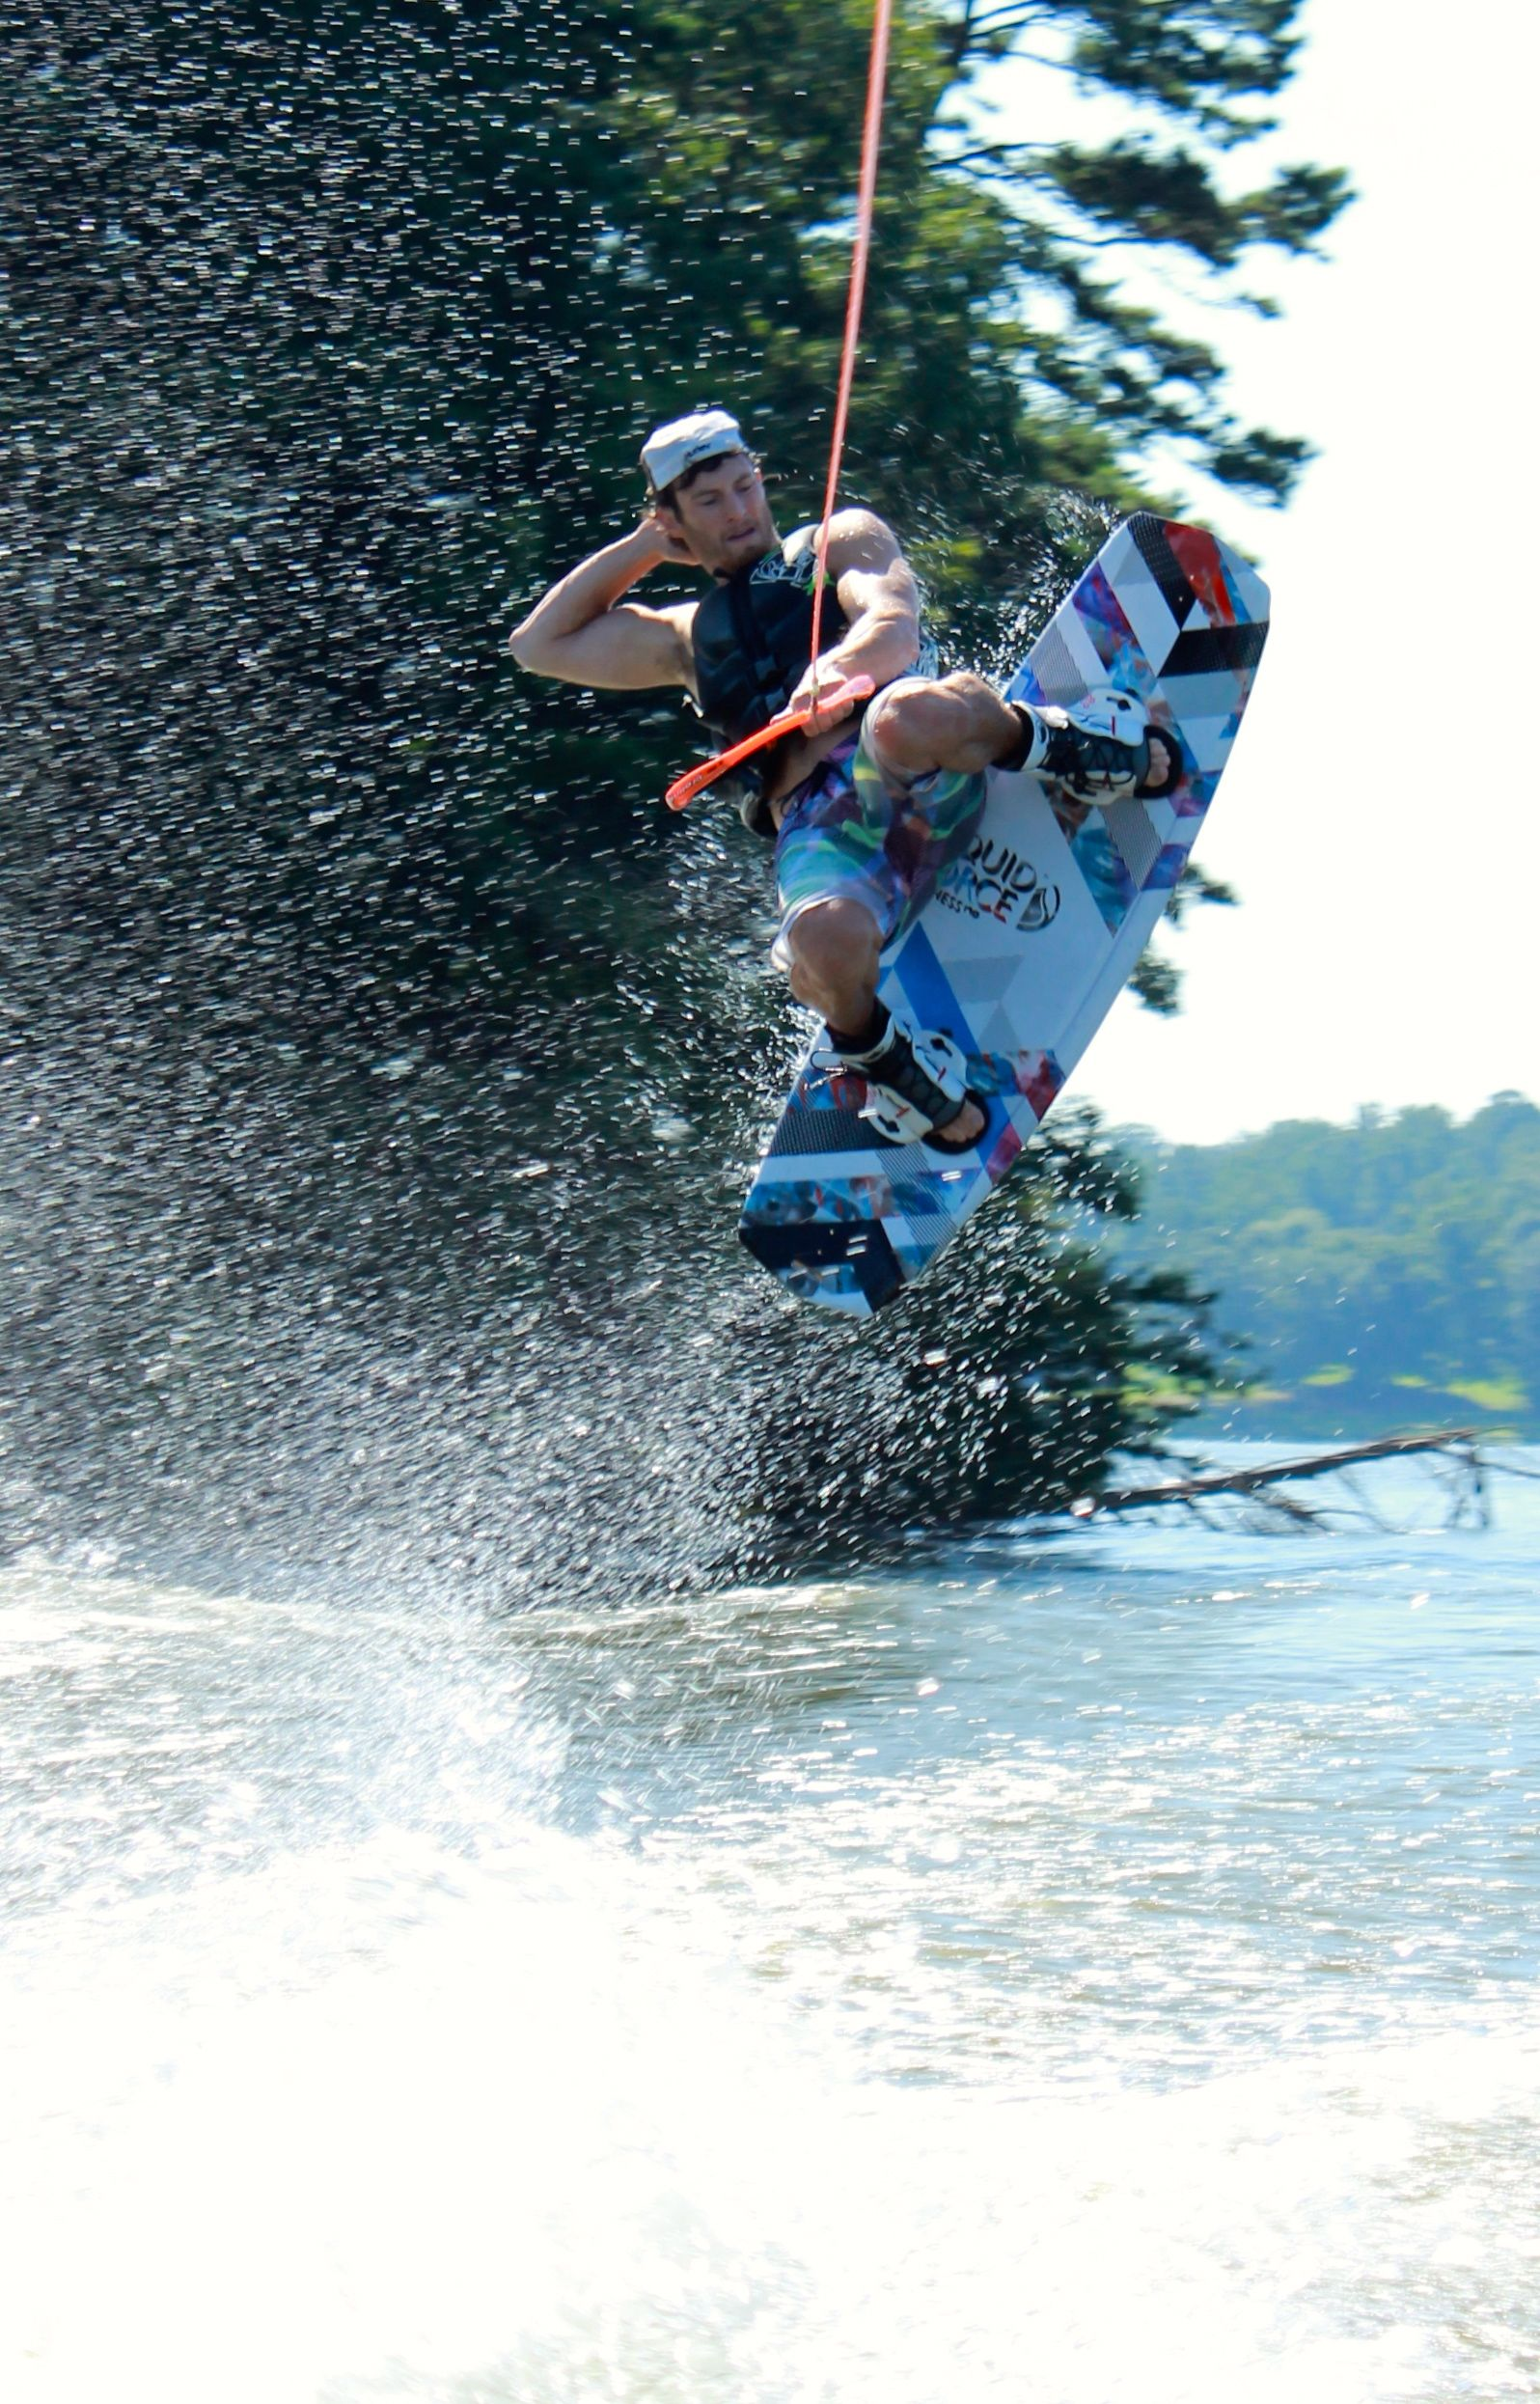 Wakeboarding Other Watersports Pinterest Water Ski Tow Harness